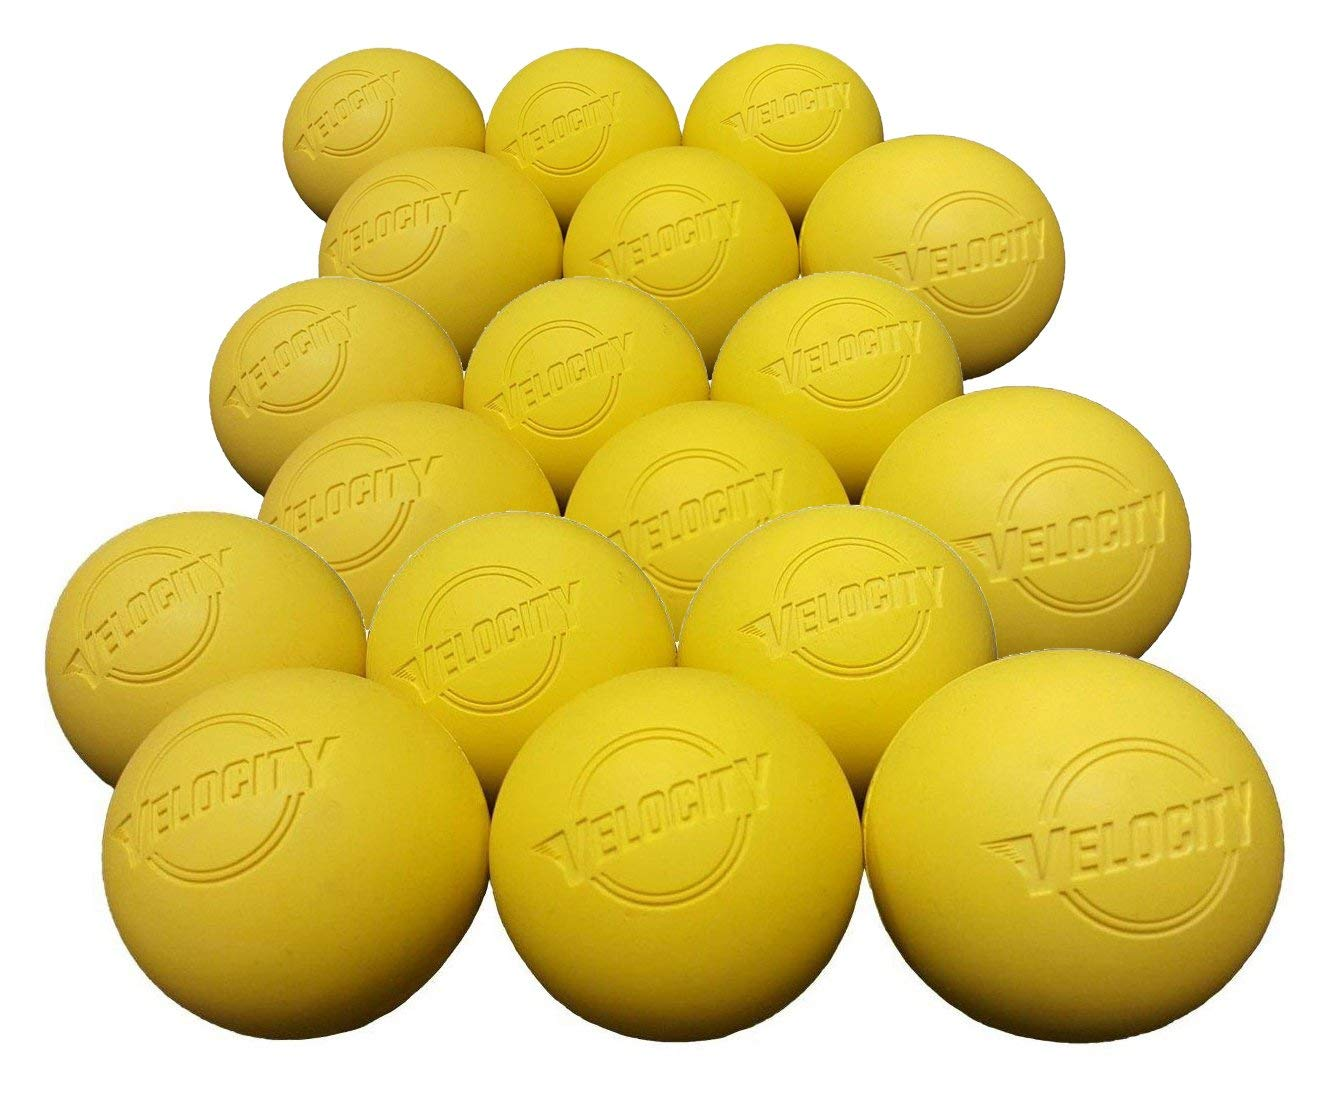 Velocity 18 Pack Lacrosse Balls for Adults & Kids: Official Size for Professional, College & High School. NOCSAE, NCAA, NFHS Certified. Colors: Yellow, Orange & White.